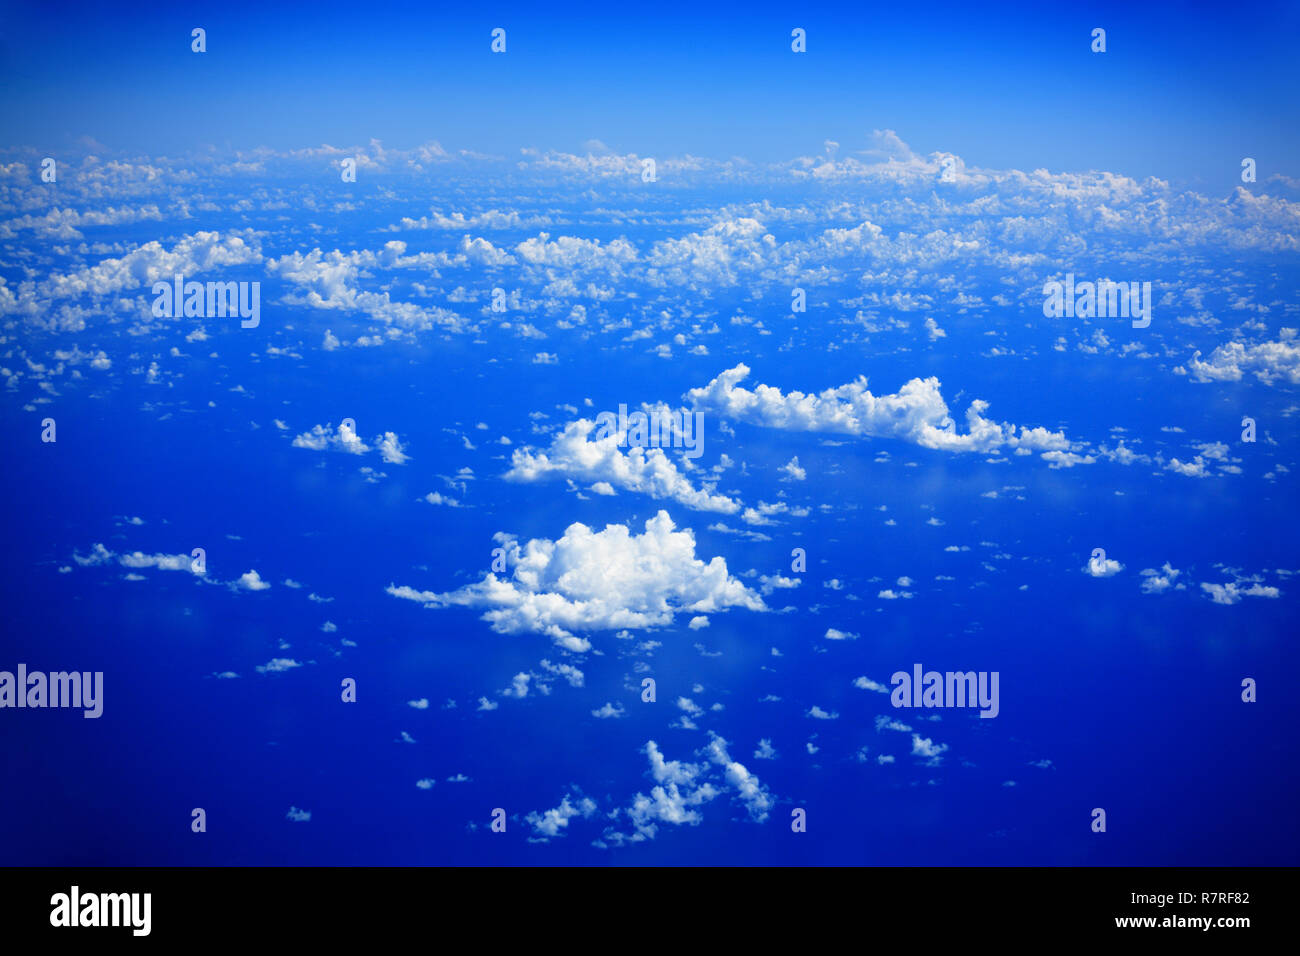 Clouds over Indian Ocean, Republic of Seychelles. - Stock Image